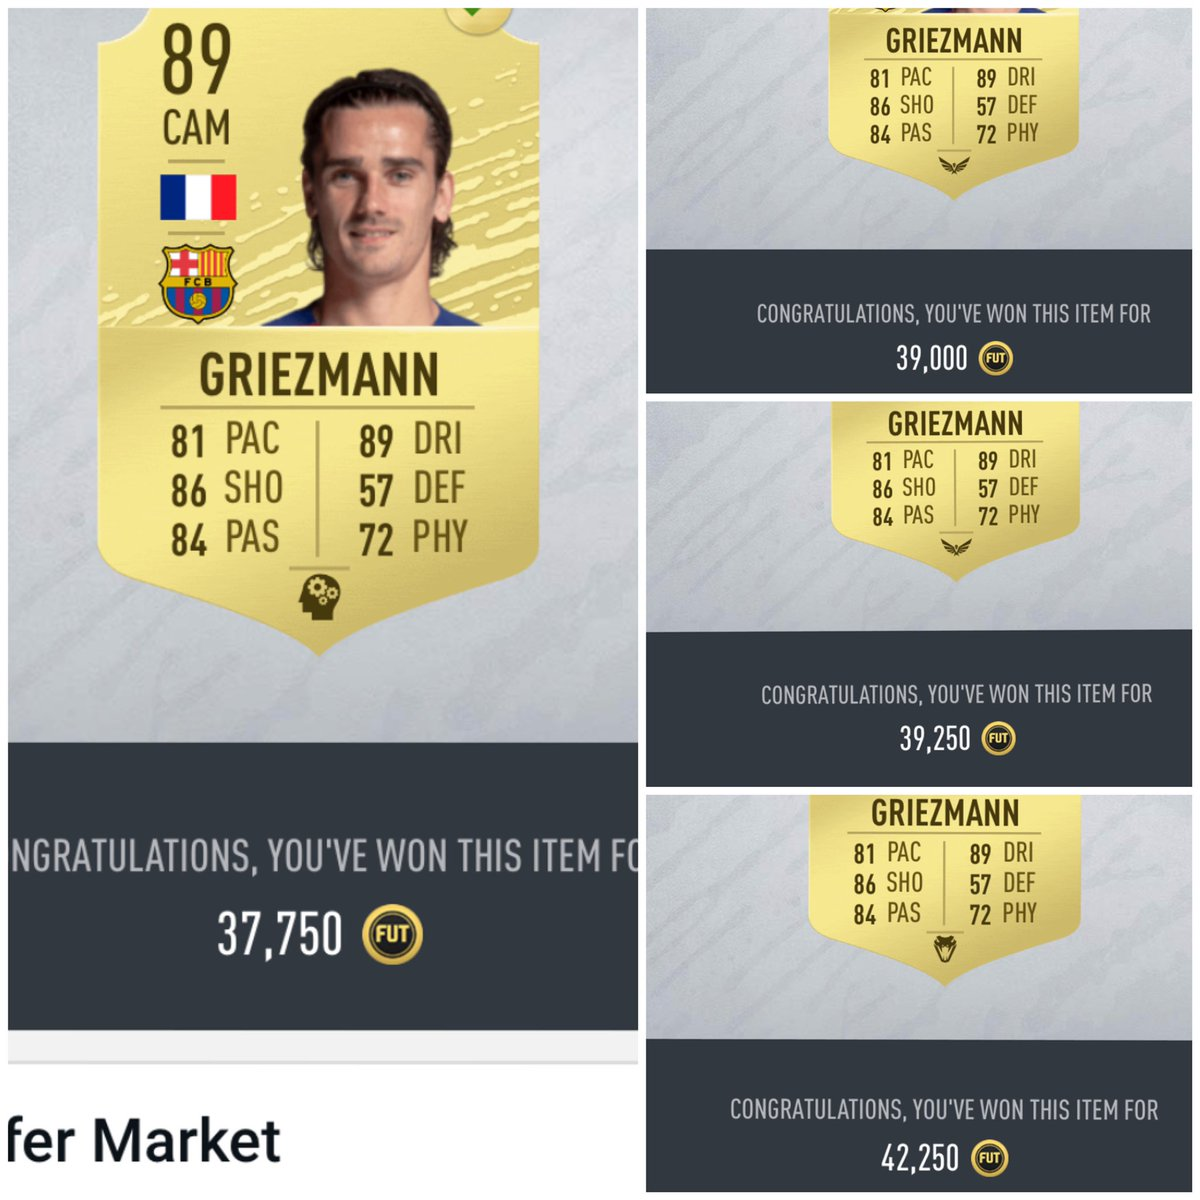 I bought 14 #Griezmann during #SquadBattles #Rewards and sold them 2-3 hours later.  Inv: 576.000 Sales: 655.750 #PAT: 46.963   So, why wait until Thursday? #Fifa20 #investments #Futchampions #FUTureStars #FUT #sbc #FutTrader #FifaTrader #MarqueeMatchUpspic.twitter.com/2U6gDG1Nvm